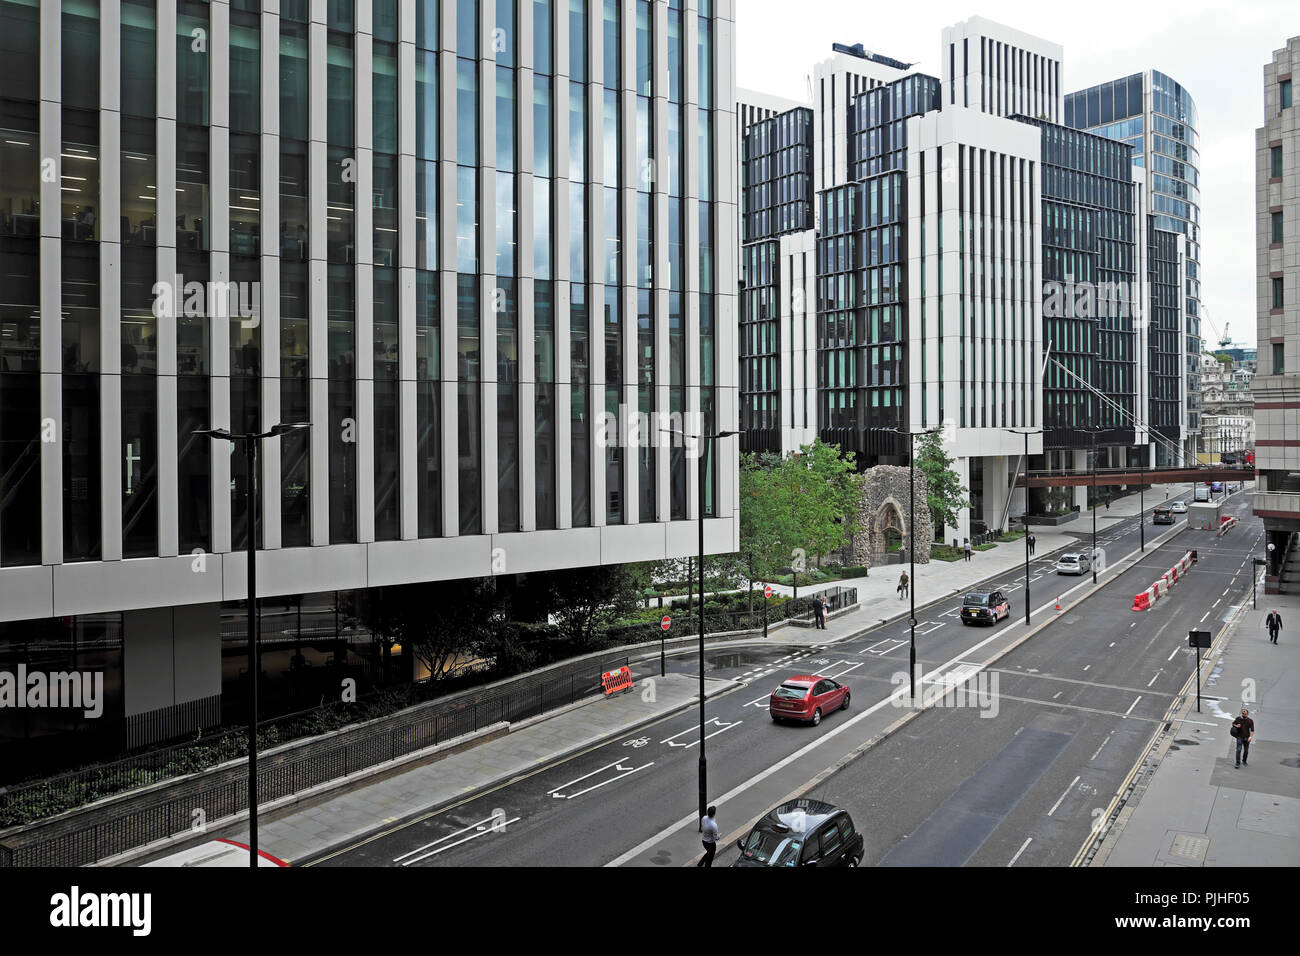 London Wall Place new modern office building development at London Wall in the City of London UK  KATHY DEWITT - Stock Image